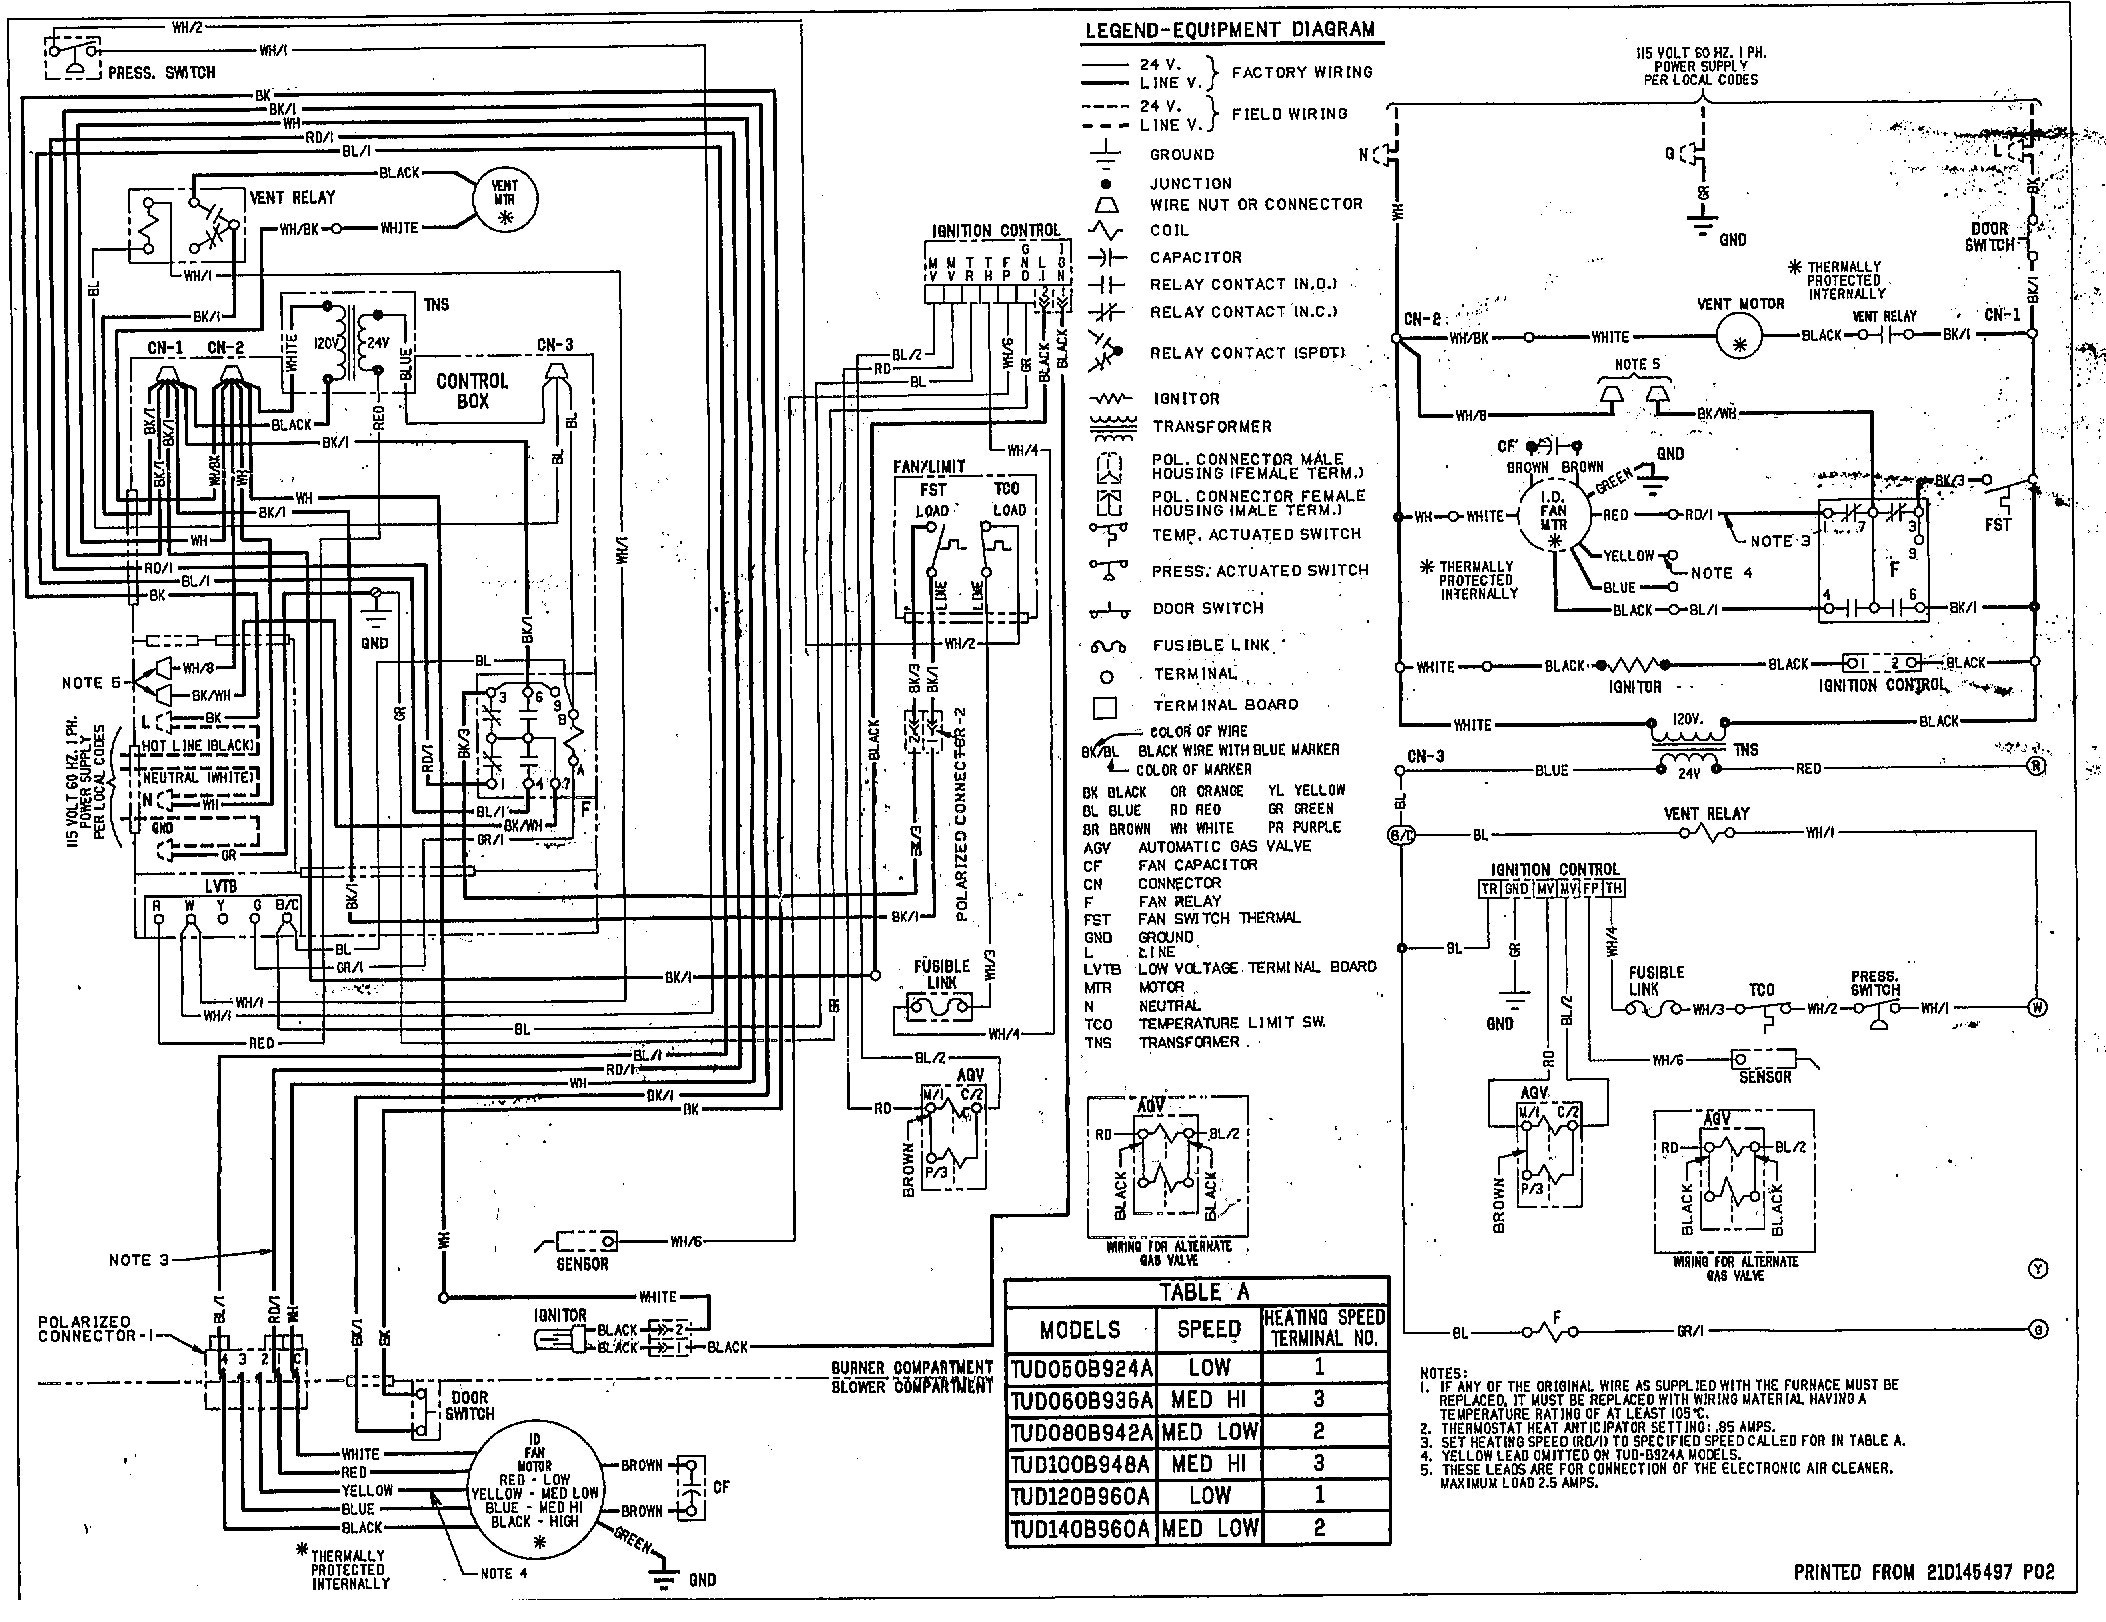 gas furnace wiring diagram simple shape wire thermostat propane propane water boiler furnace gas furnace wiring